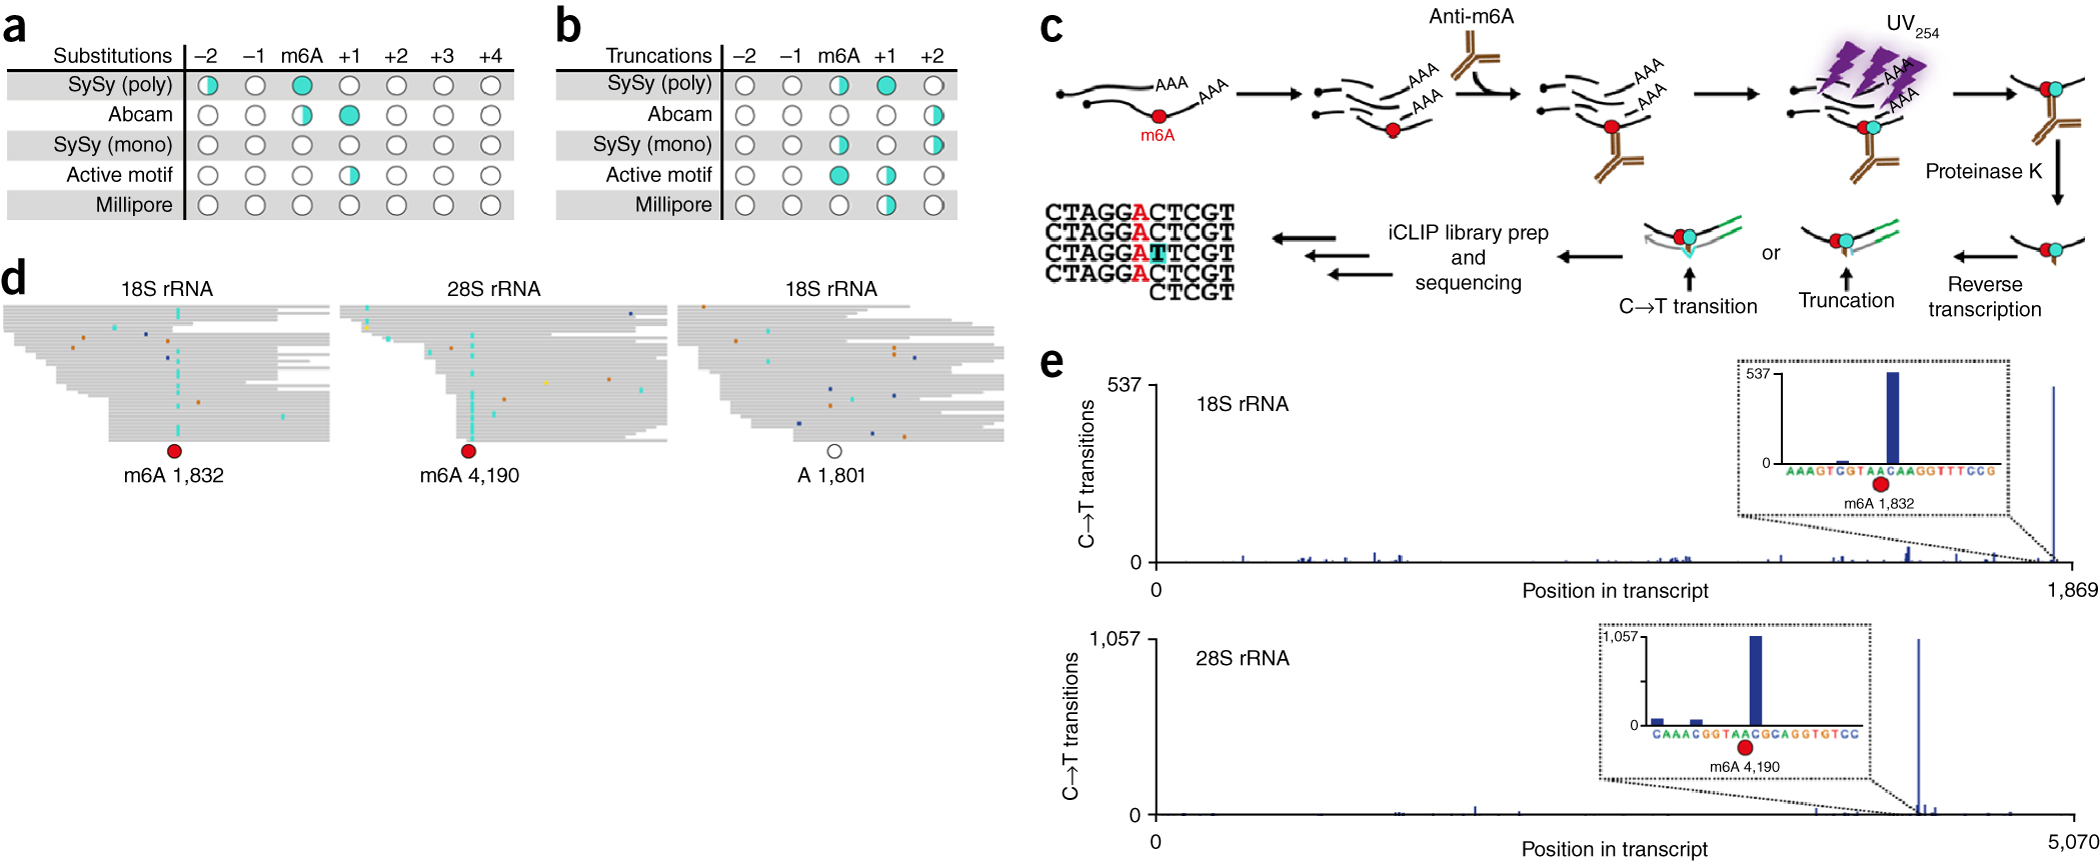 Anti-m6A induces signature mutations that directly indicate the location of m6A.